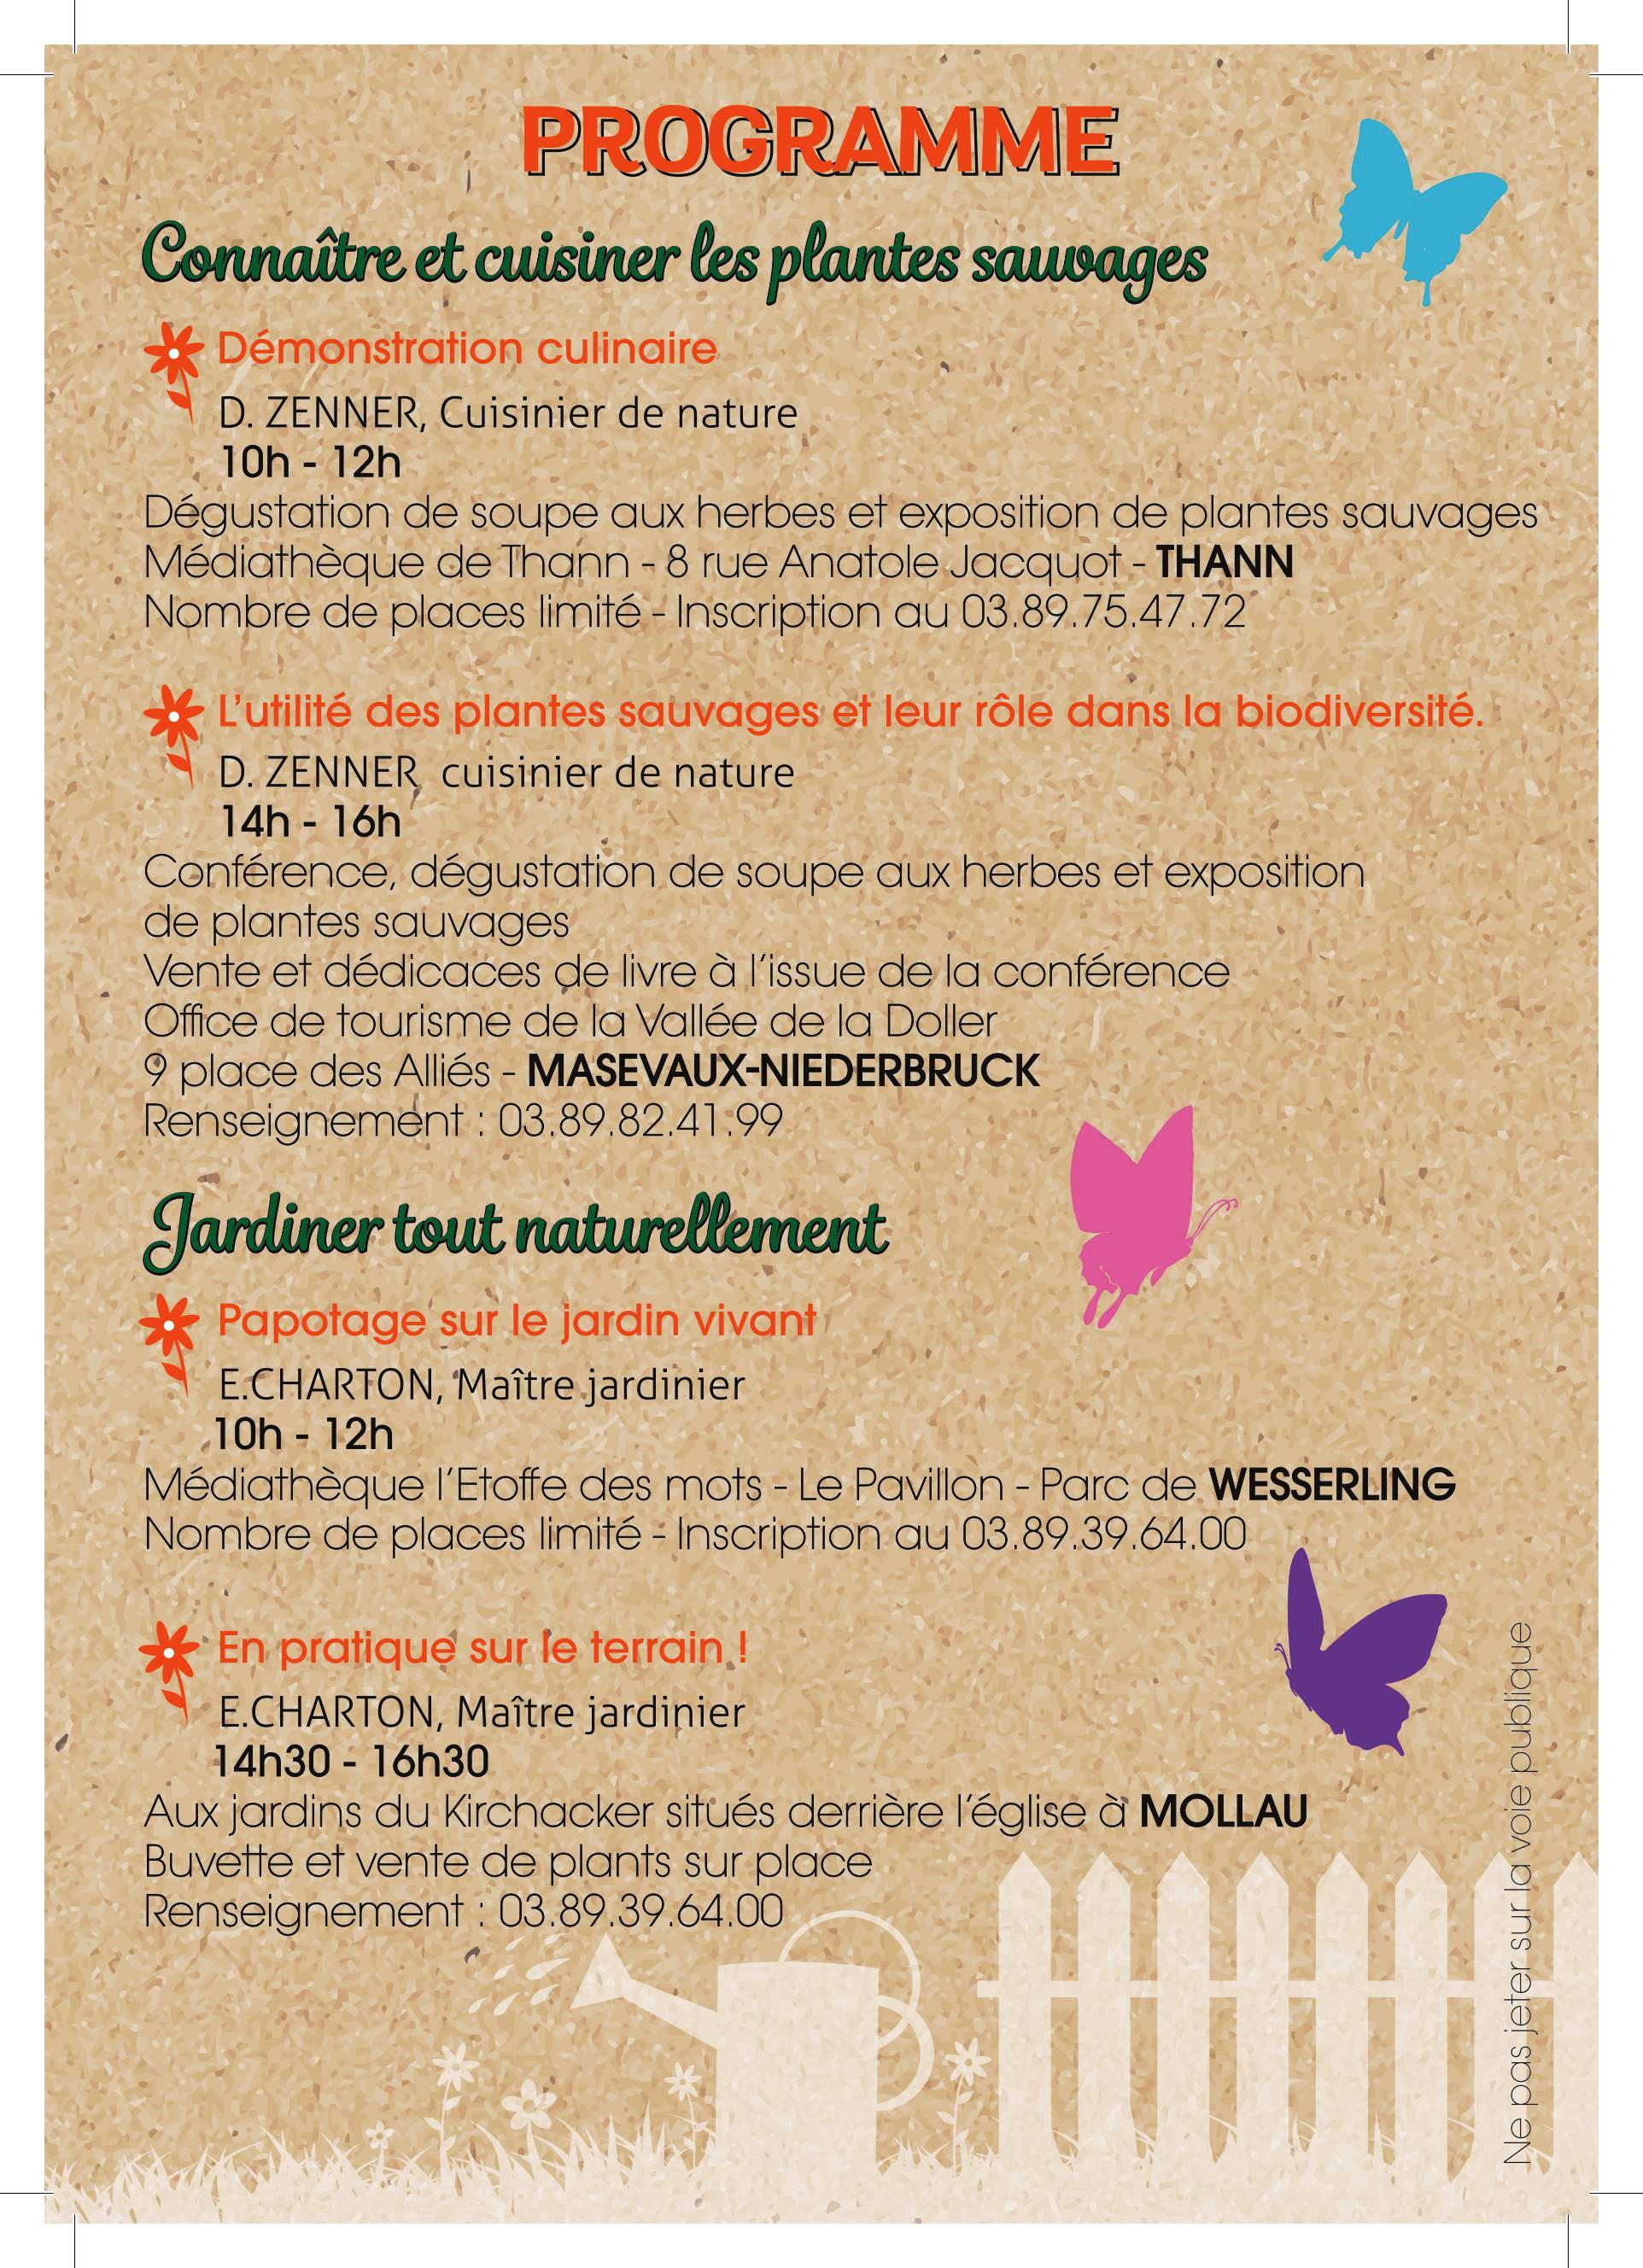 CultivonslaNature_Flyer_OK (2)